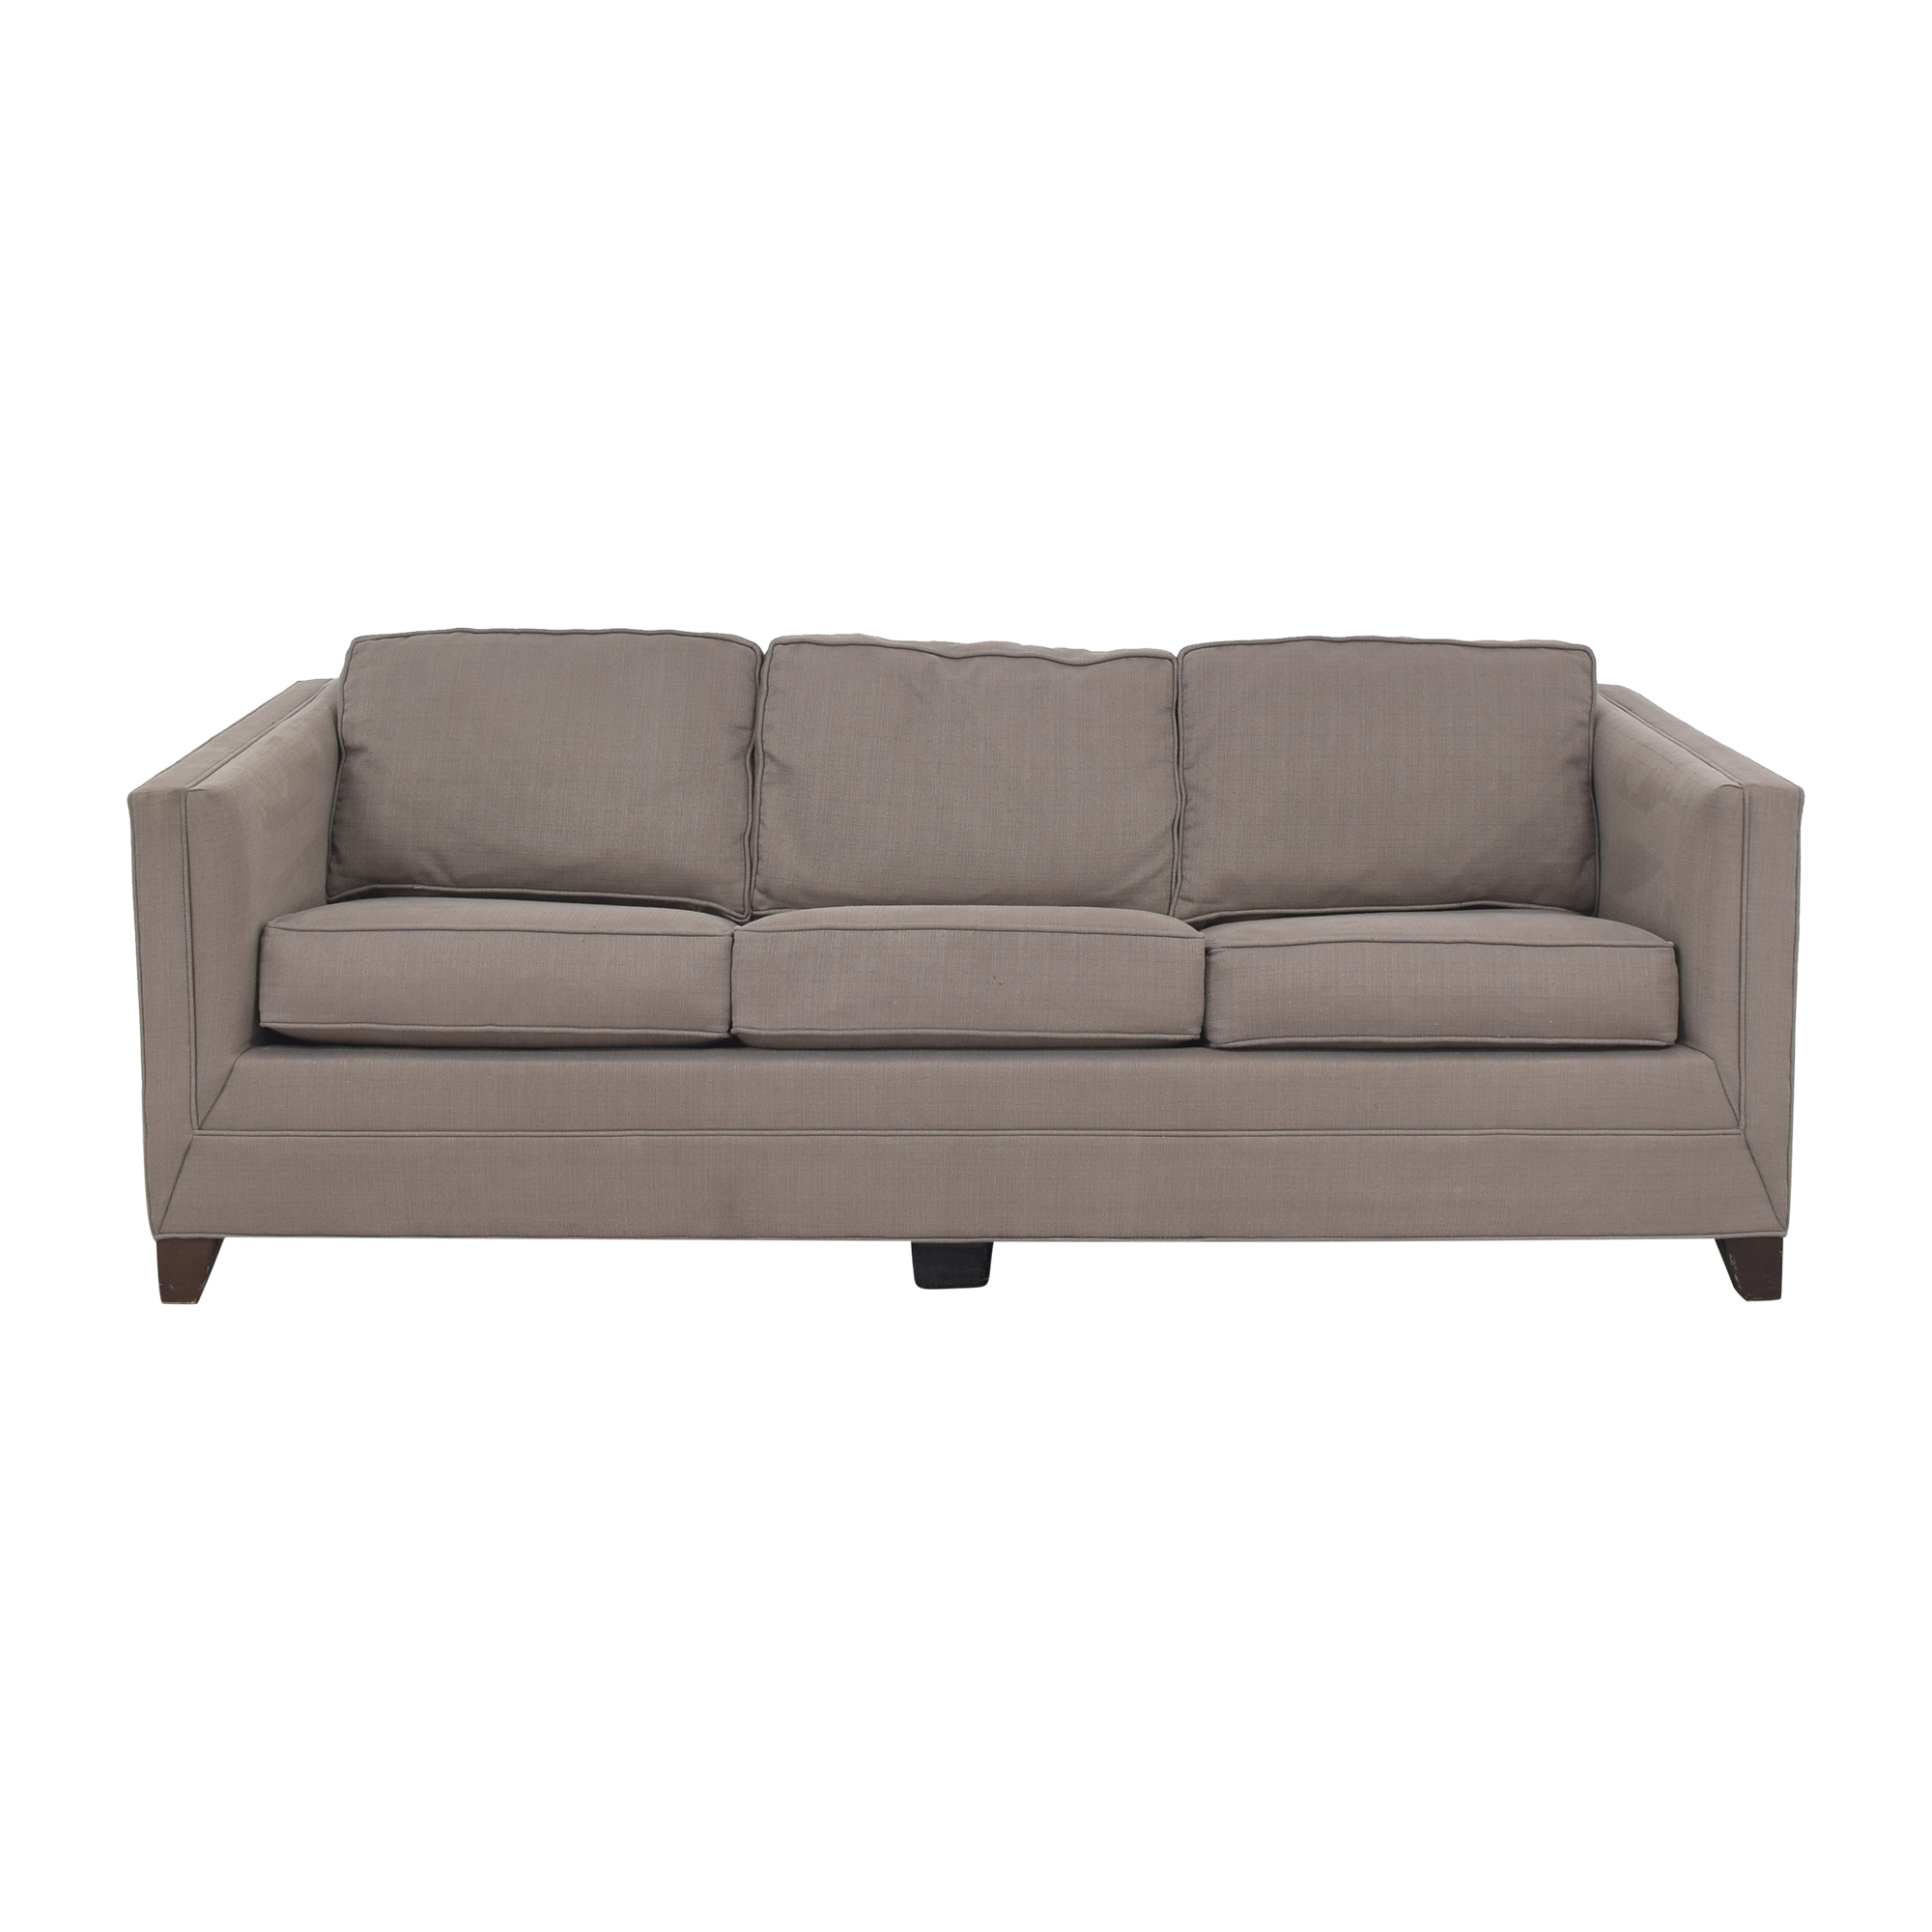 Mitchell Gold + Bob Williams Mitchell Gold + Bob Williams Queen Sleeper Sofa Sofa Beds